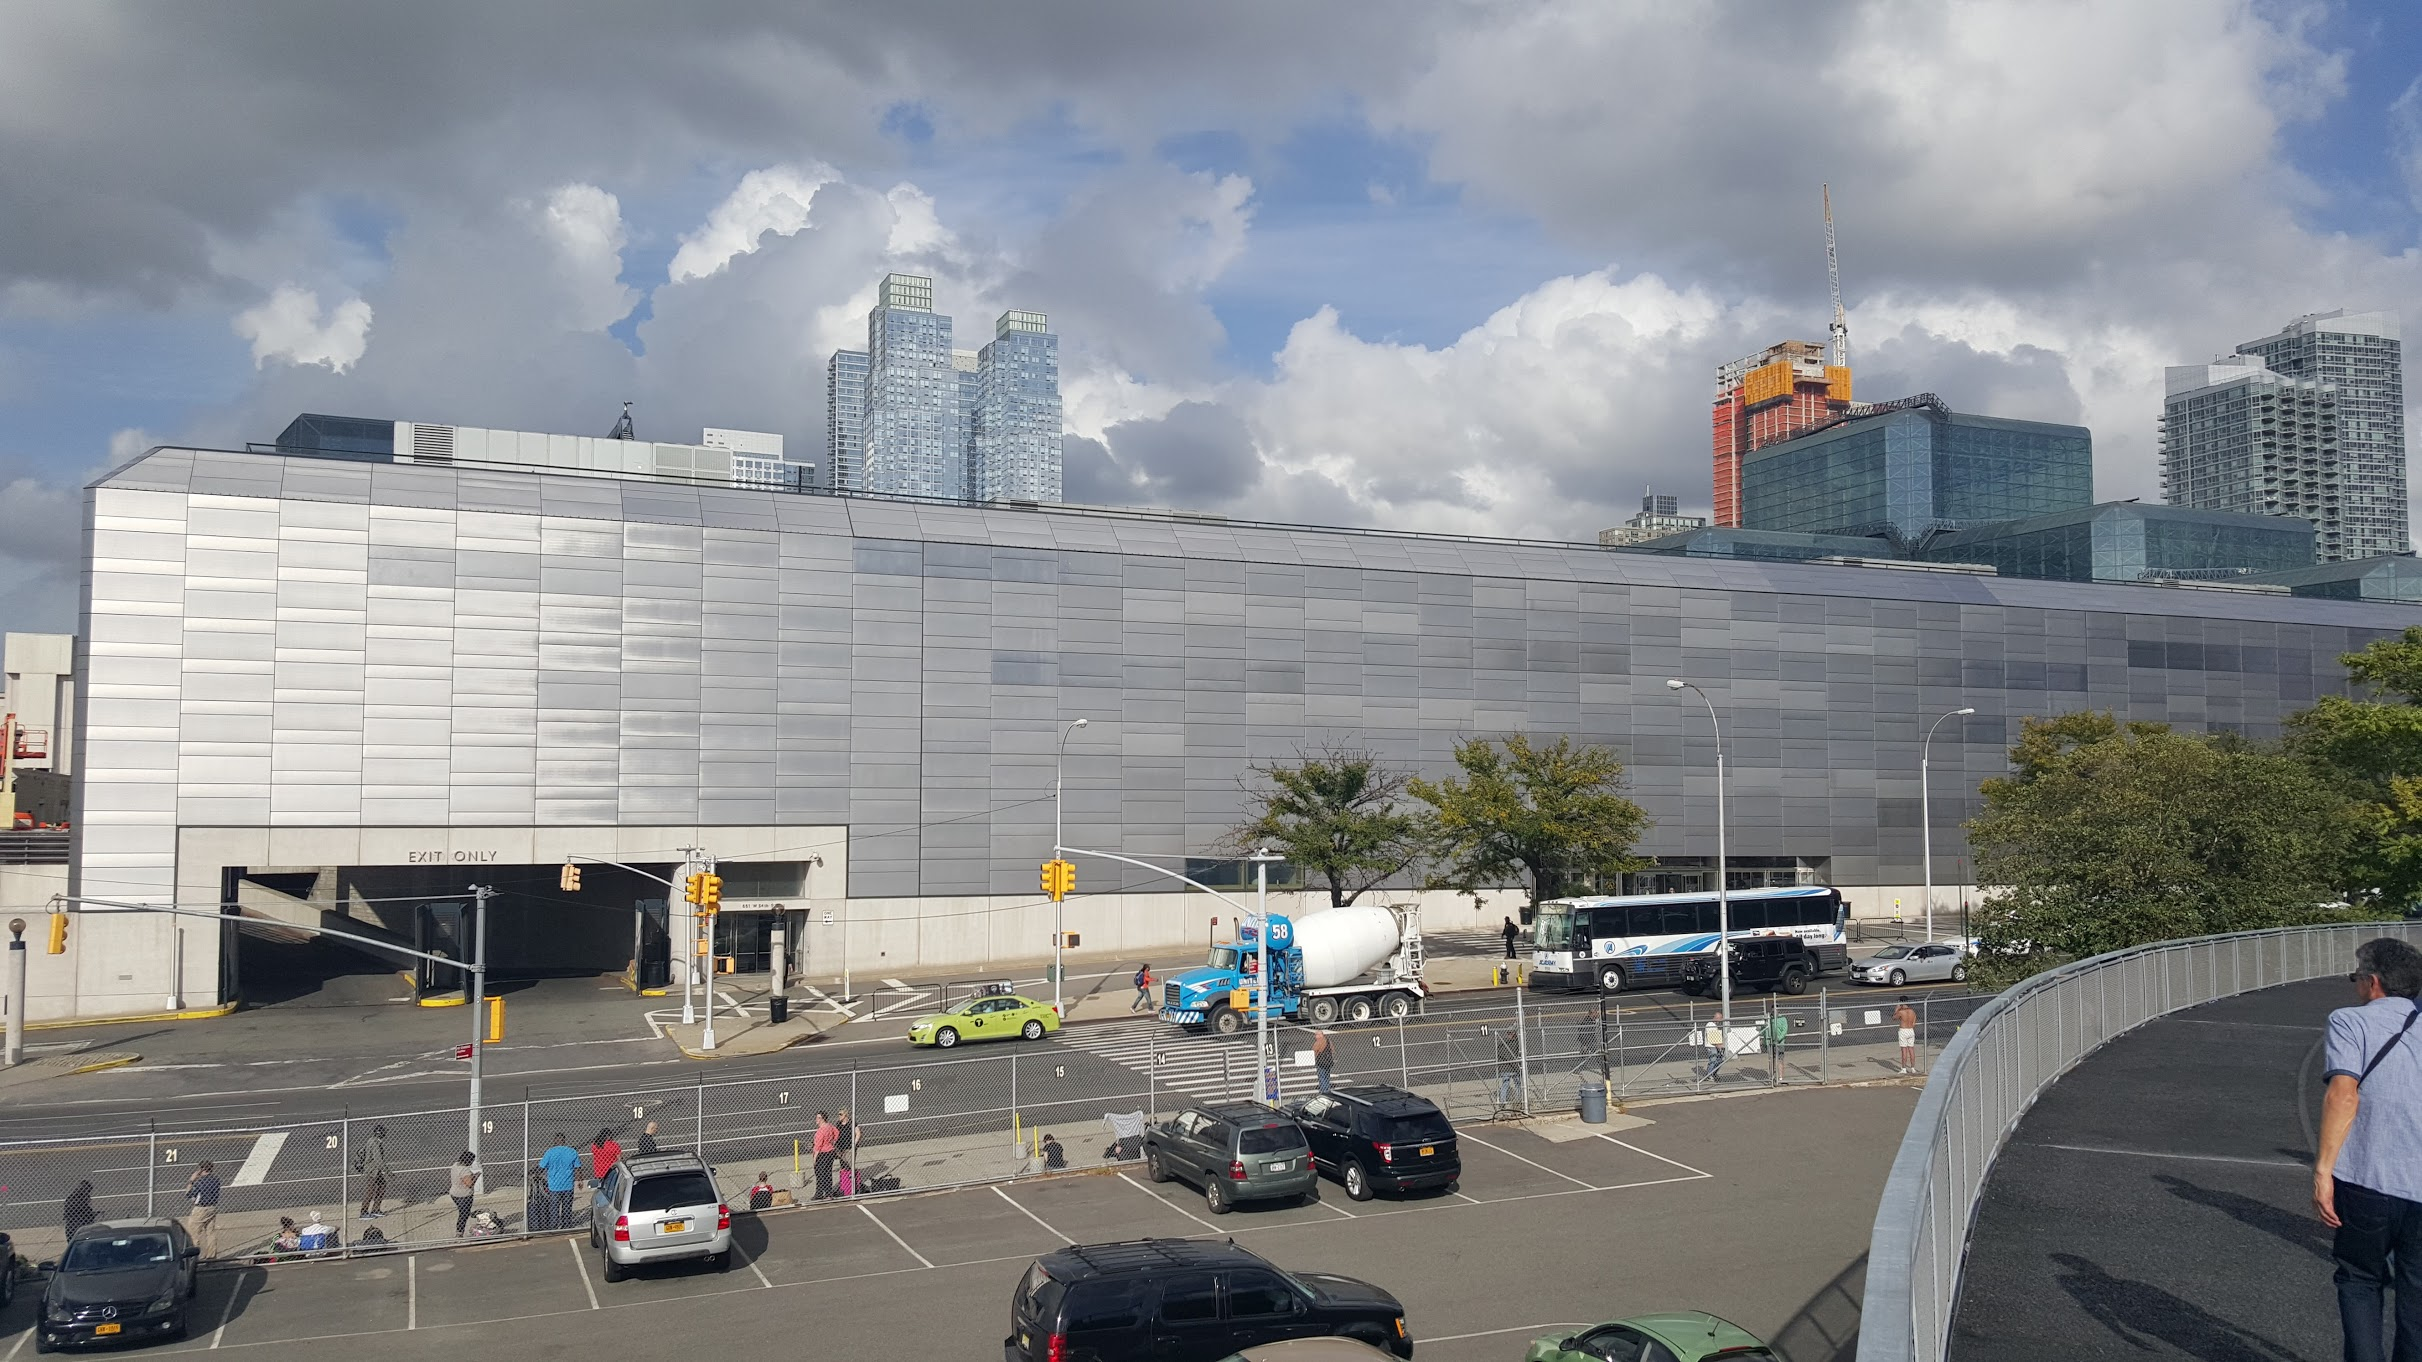 Javits Center in Manhattan. They could have done some faux-granularity here.Instead we have a blank wall that takes up the entire length of a block. The result is a dead street, despite being within a short walk from Times Square - one of,if not,  the most crowded places in the United States.